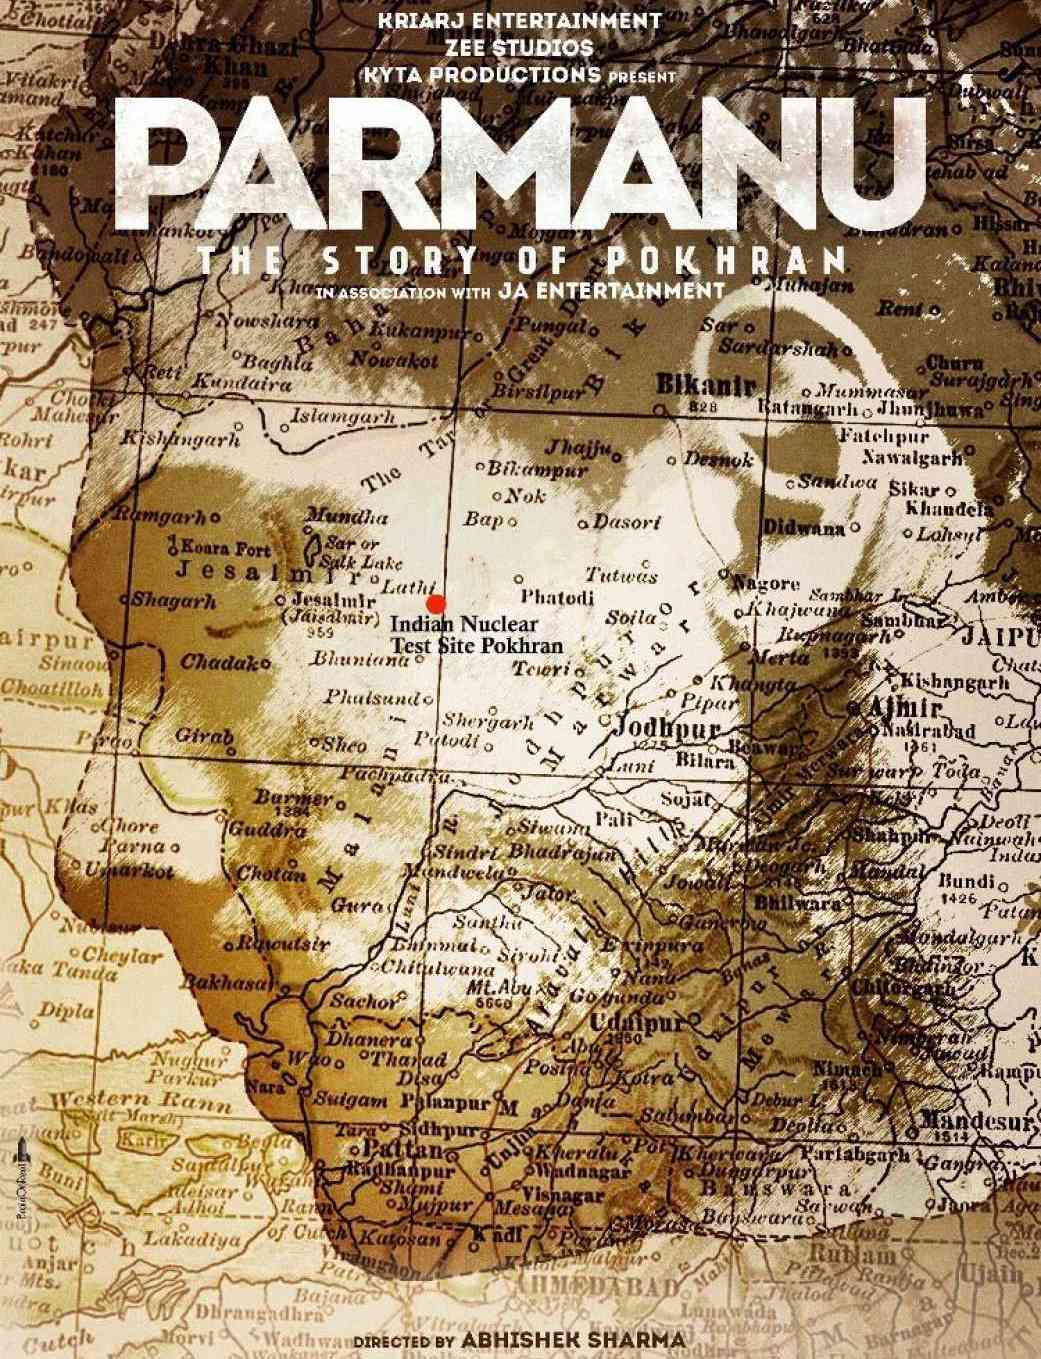 Parmanu - The Story of Pokharan film poster